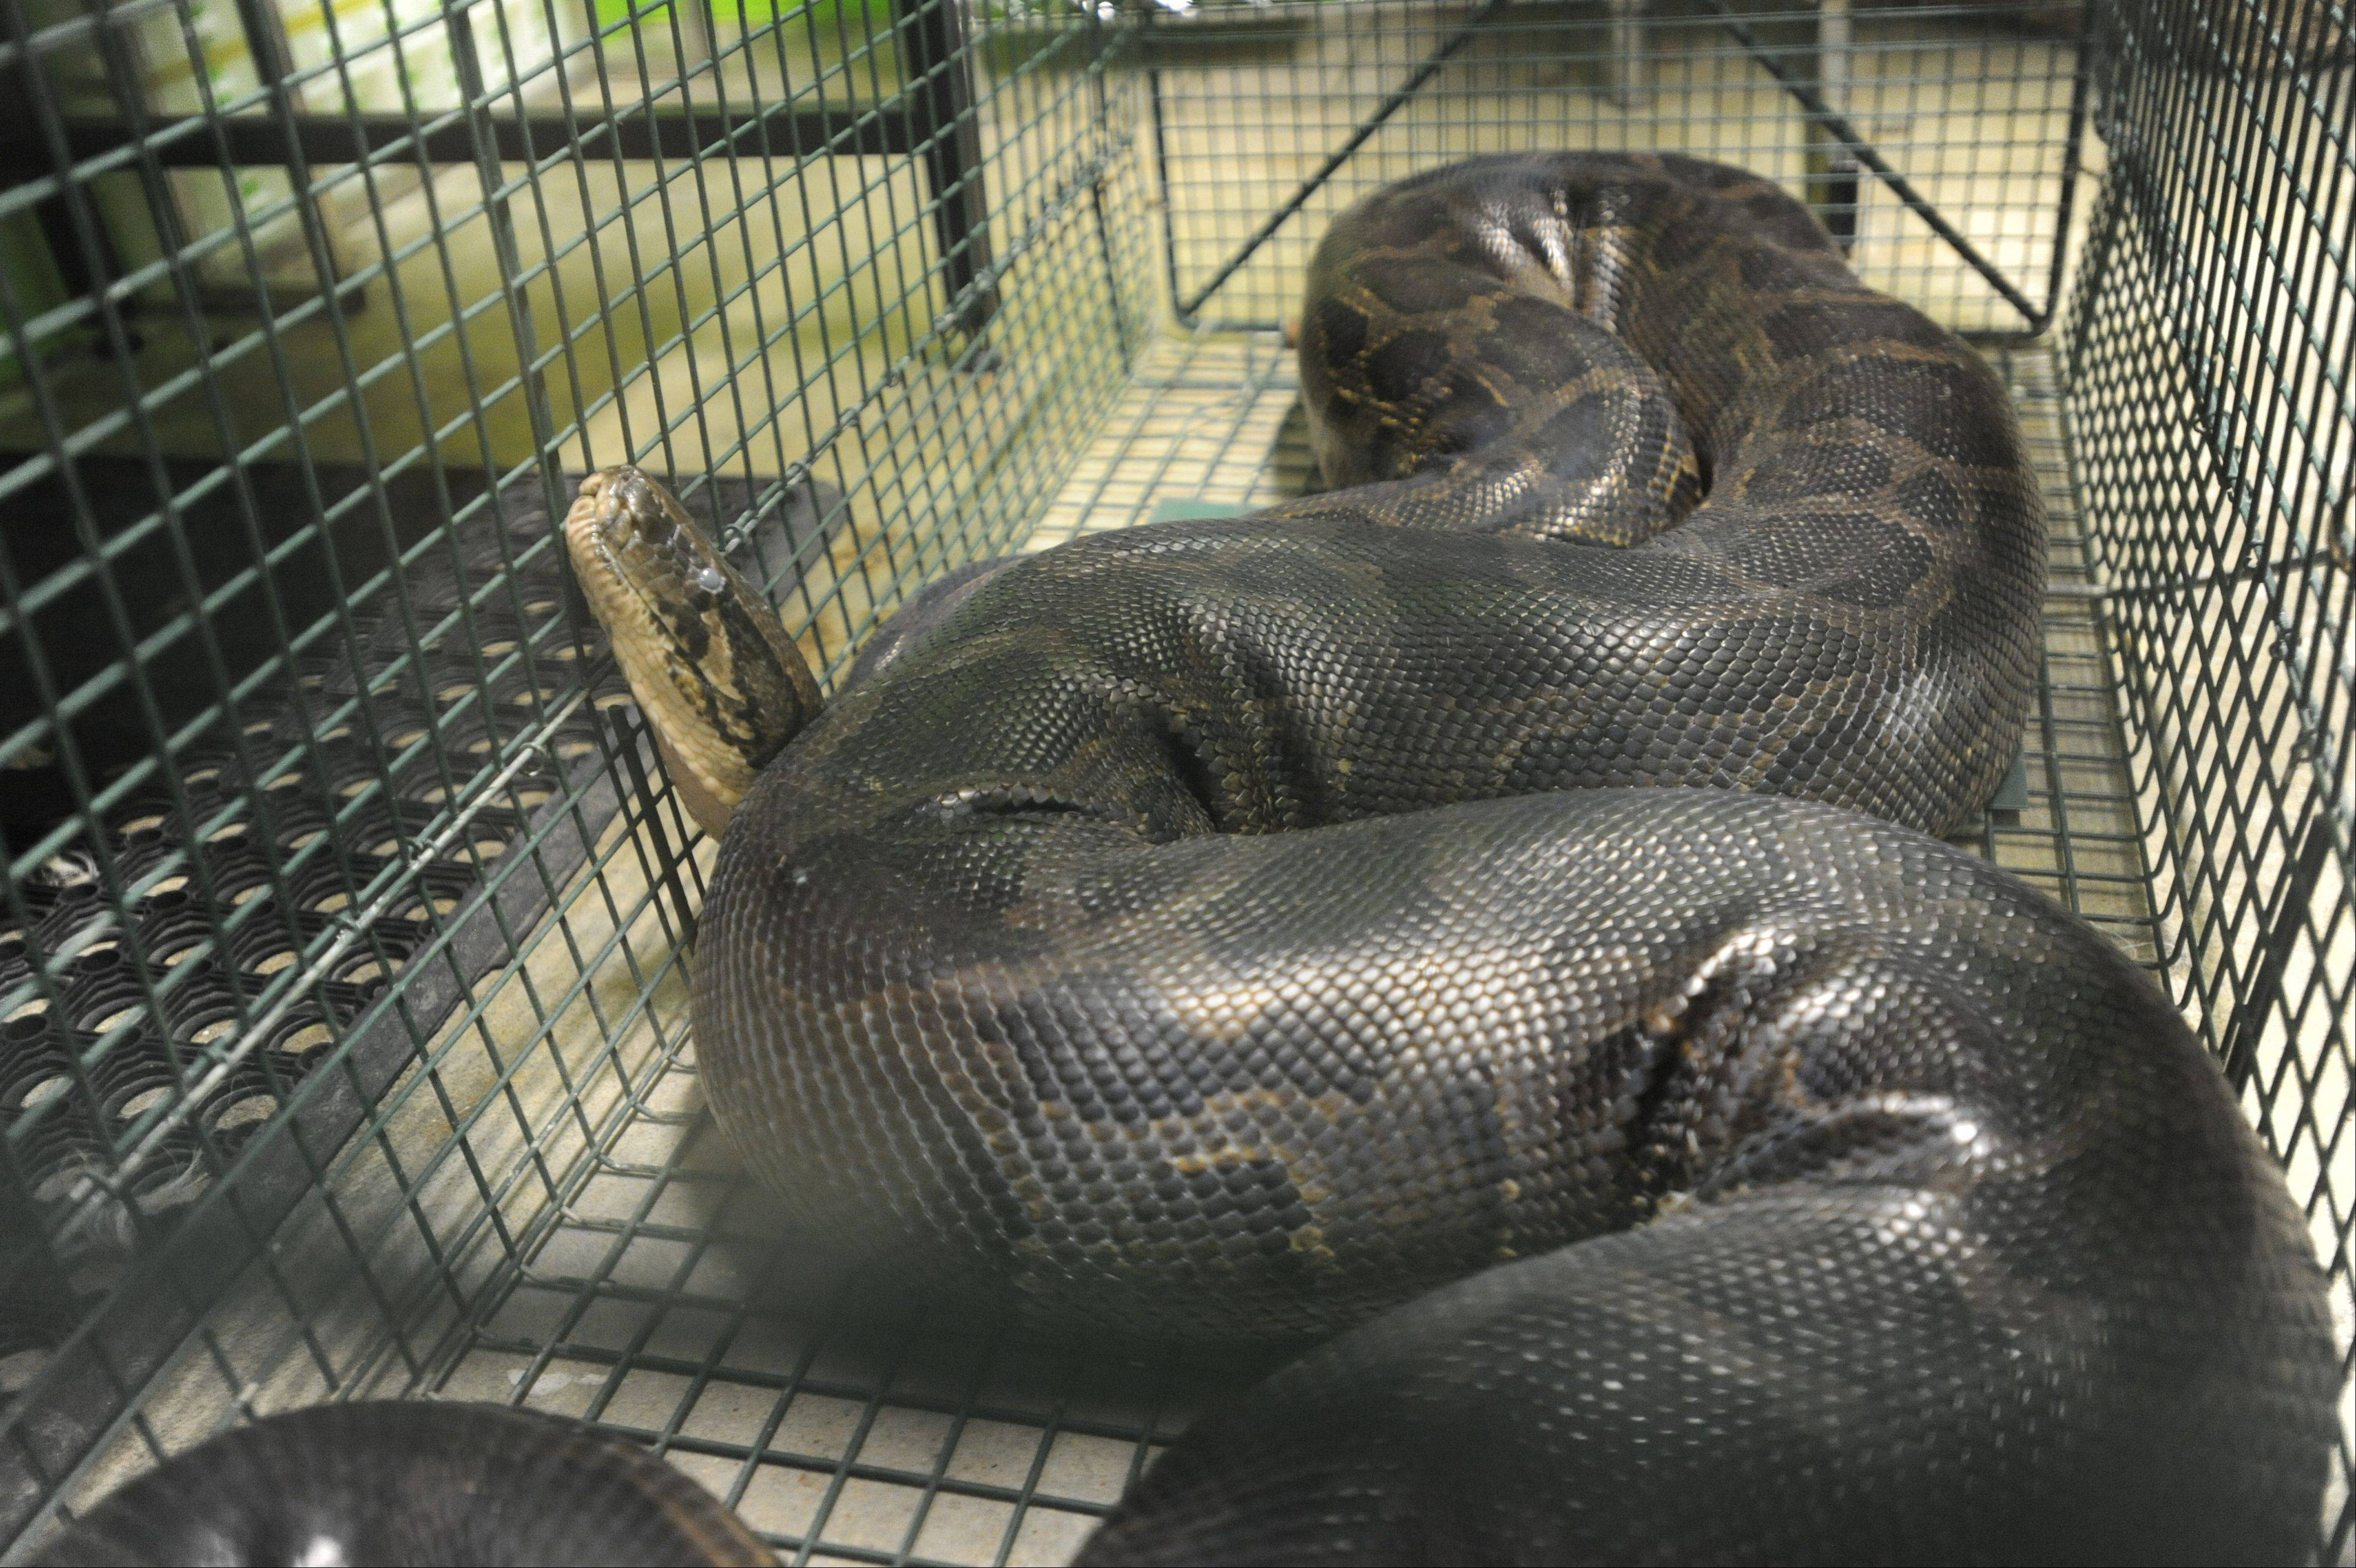 These are snakes Beaumont, Texas police seized on Monday after several sightings. Among the snakes was this 12 to 13 foot Burmese python.